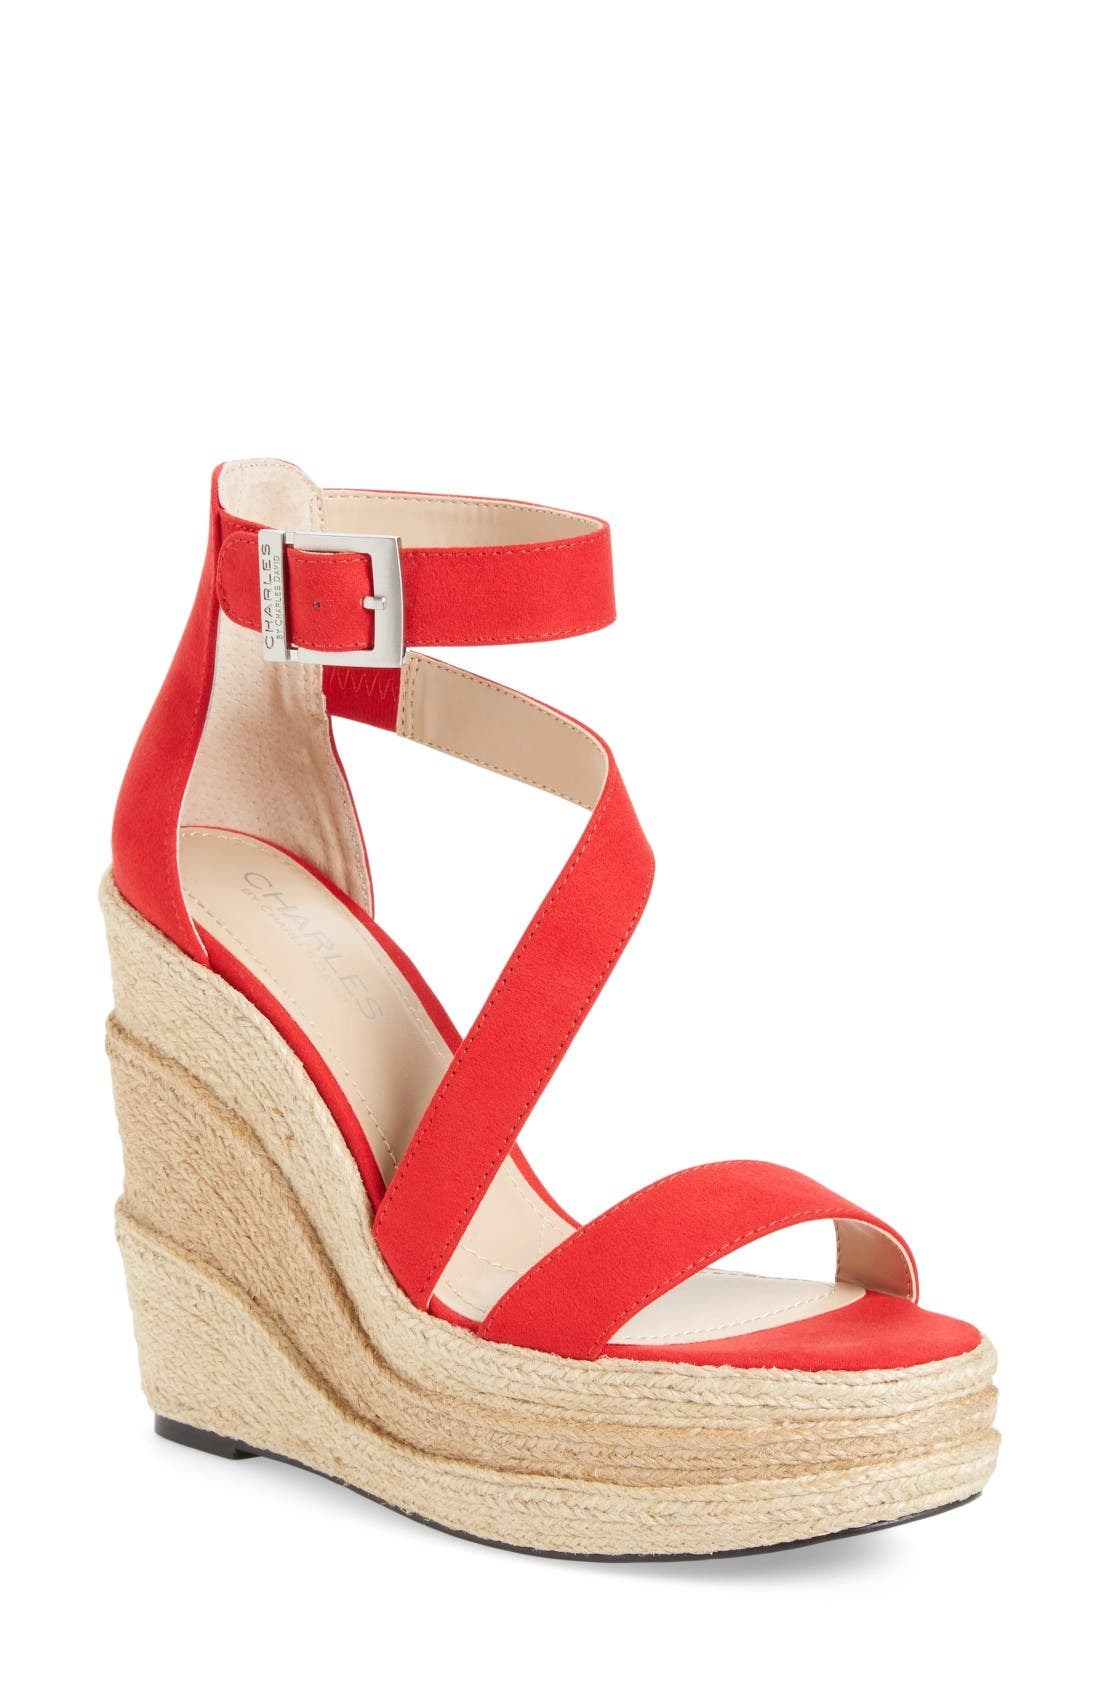 Thunder Wedge Sandal,                         Main,                         color, Red Micro Suede